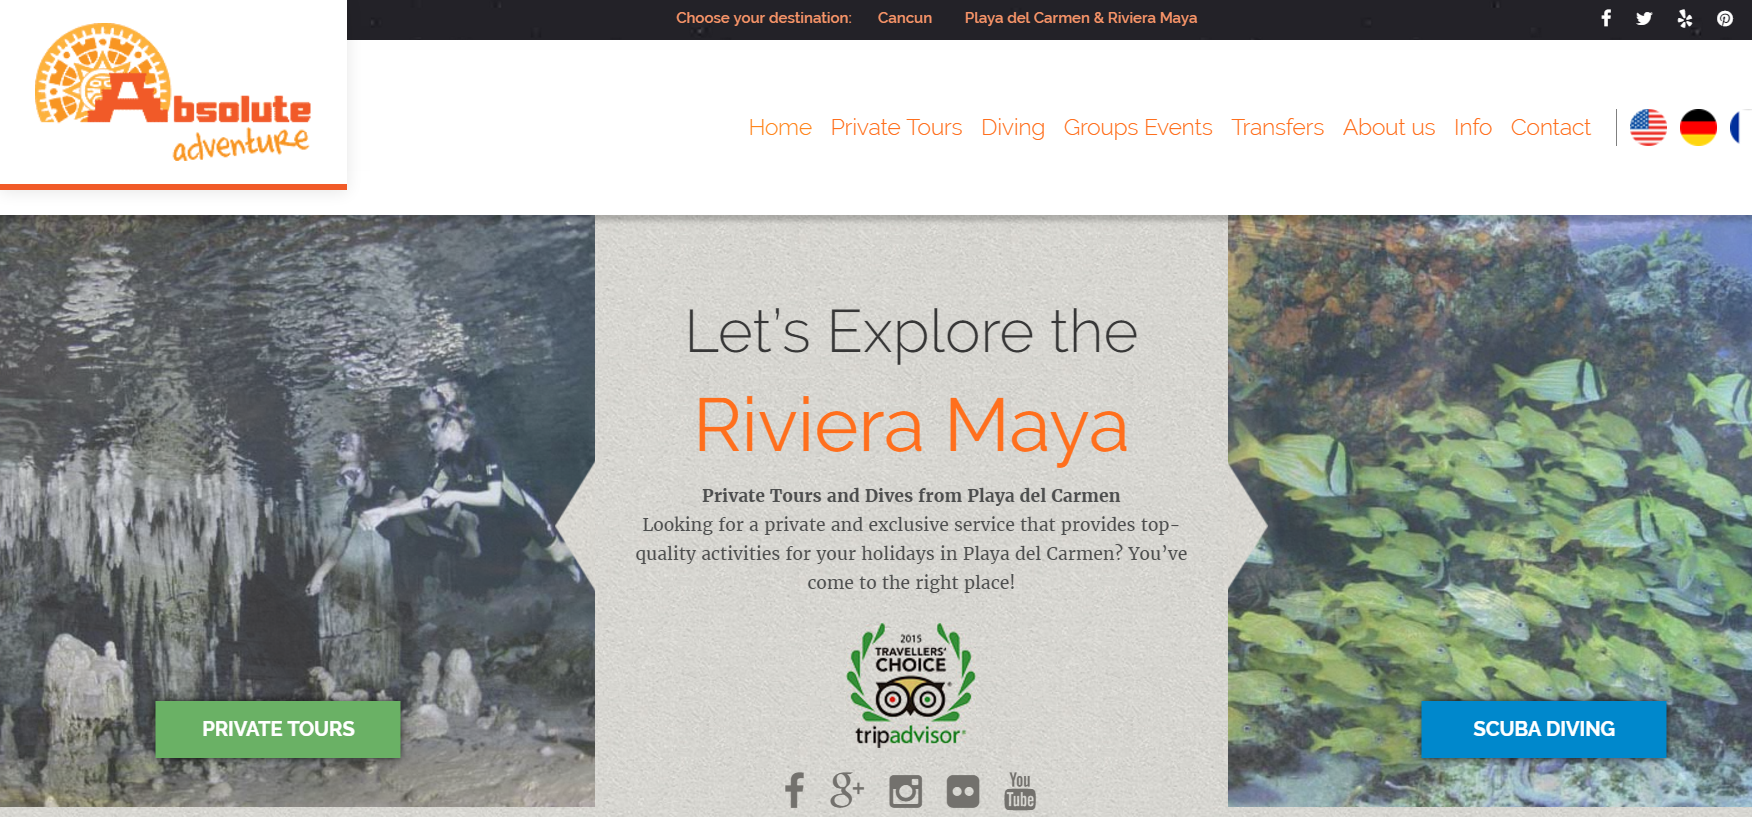 Website and email content for Absolute Adventure Mexico, a tourism business based in Playa del Carmen, Mexico.